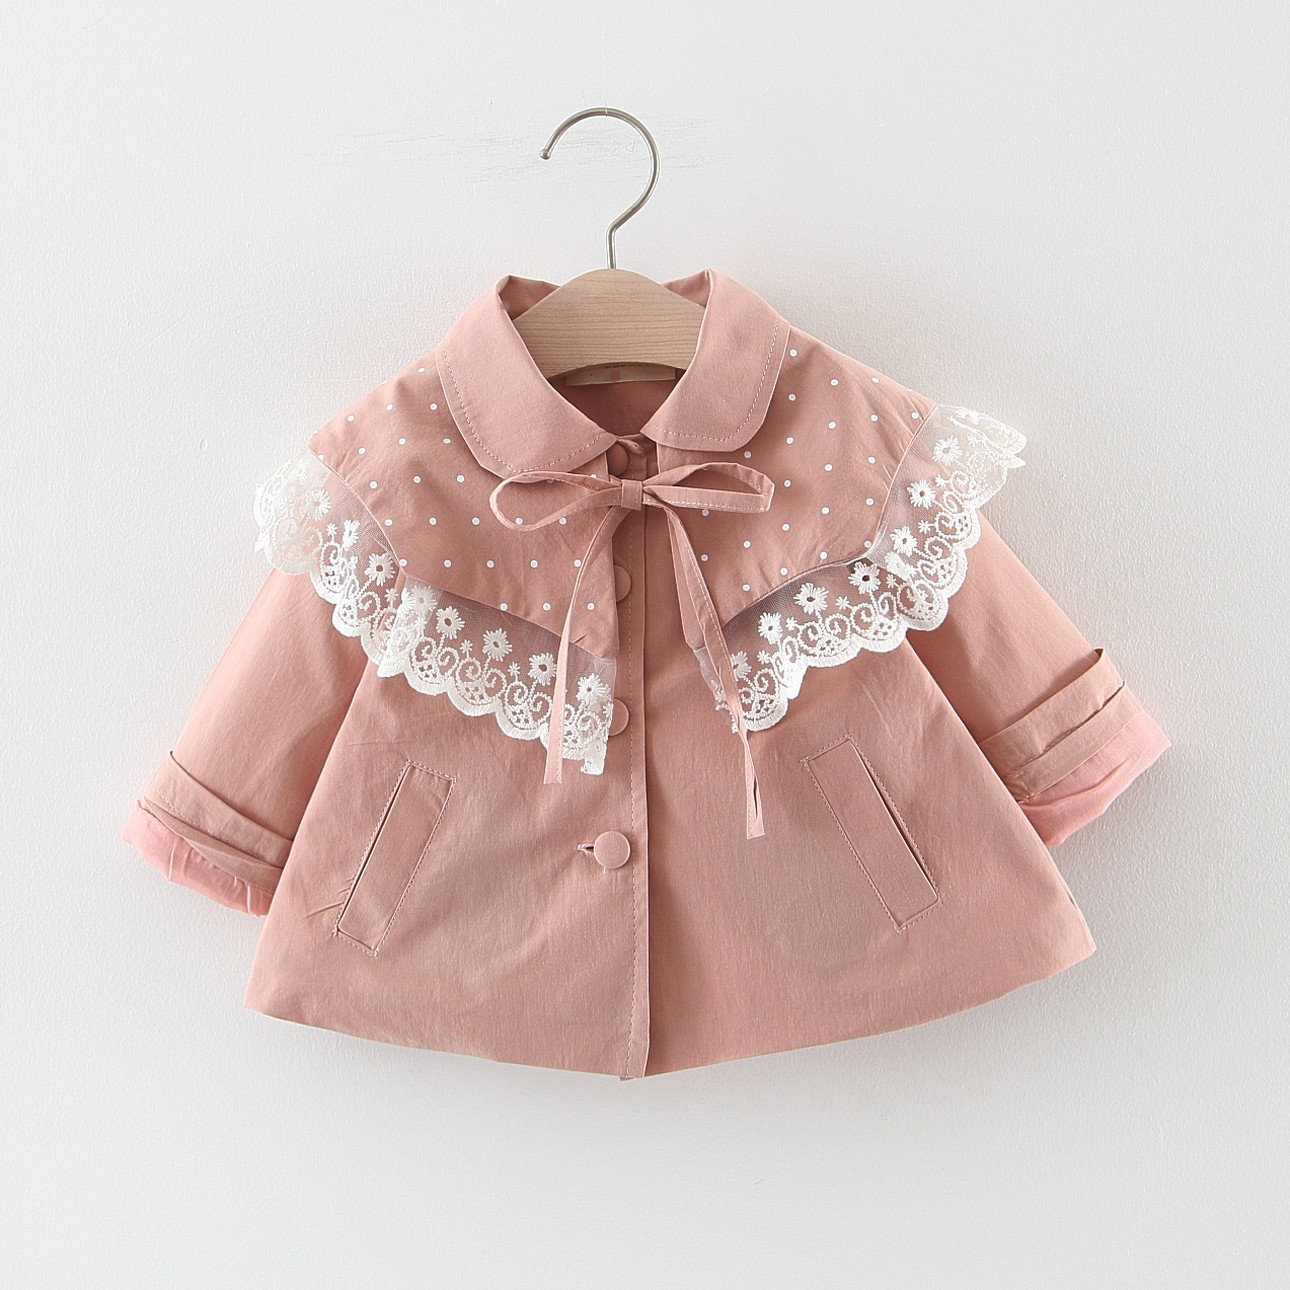 2019 Newborn Baby Girls Windbreaker Korean Fashion Lace Stitching Large Lapel Toddler   Trench   Coat Kids Clothing Fashion Outwear